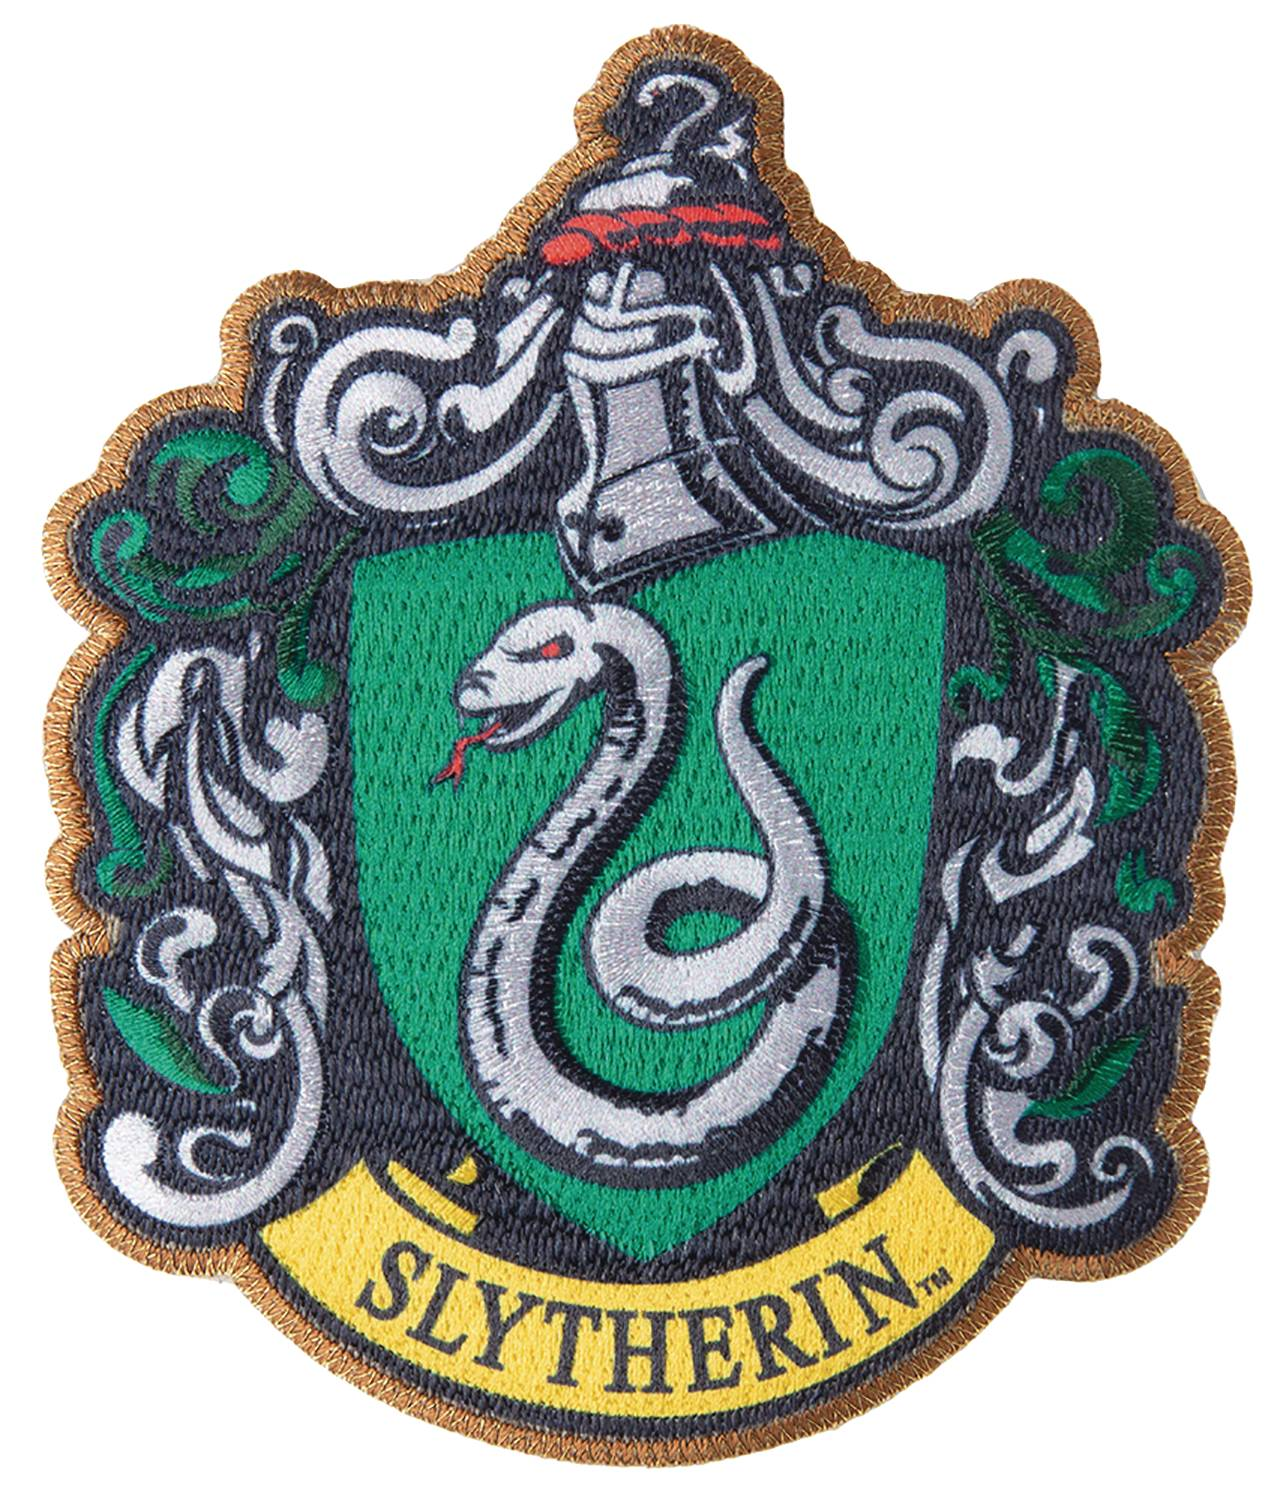 HARRY POTTER SLYTHERIN PATCH.jpg